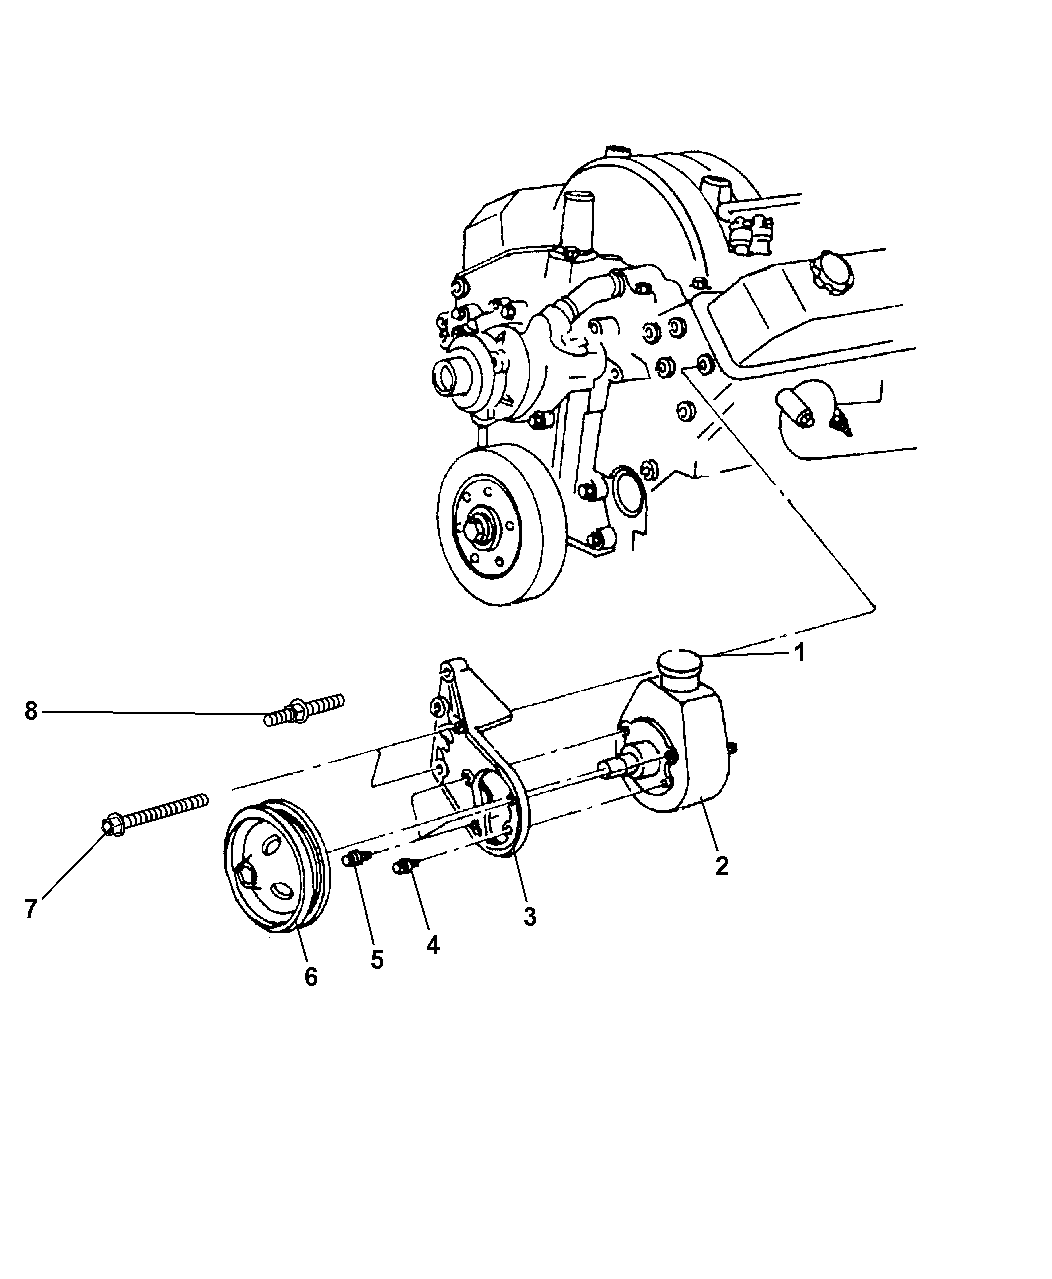 Dodge Durango 5 9l Engine Diagram. Dodge. Auto Wiring Diagram